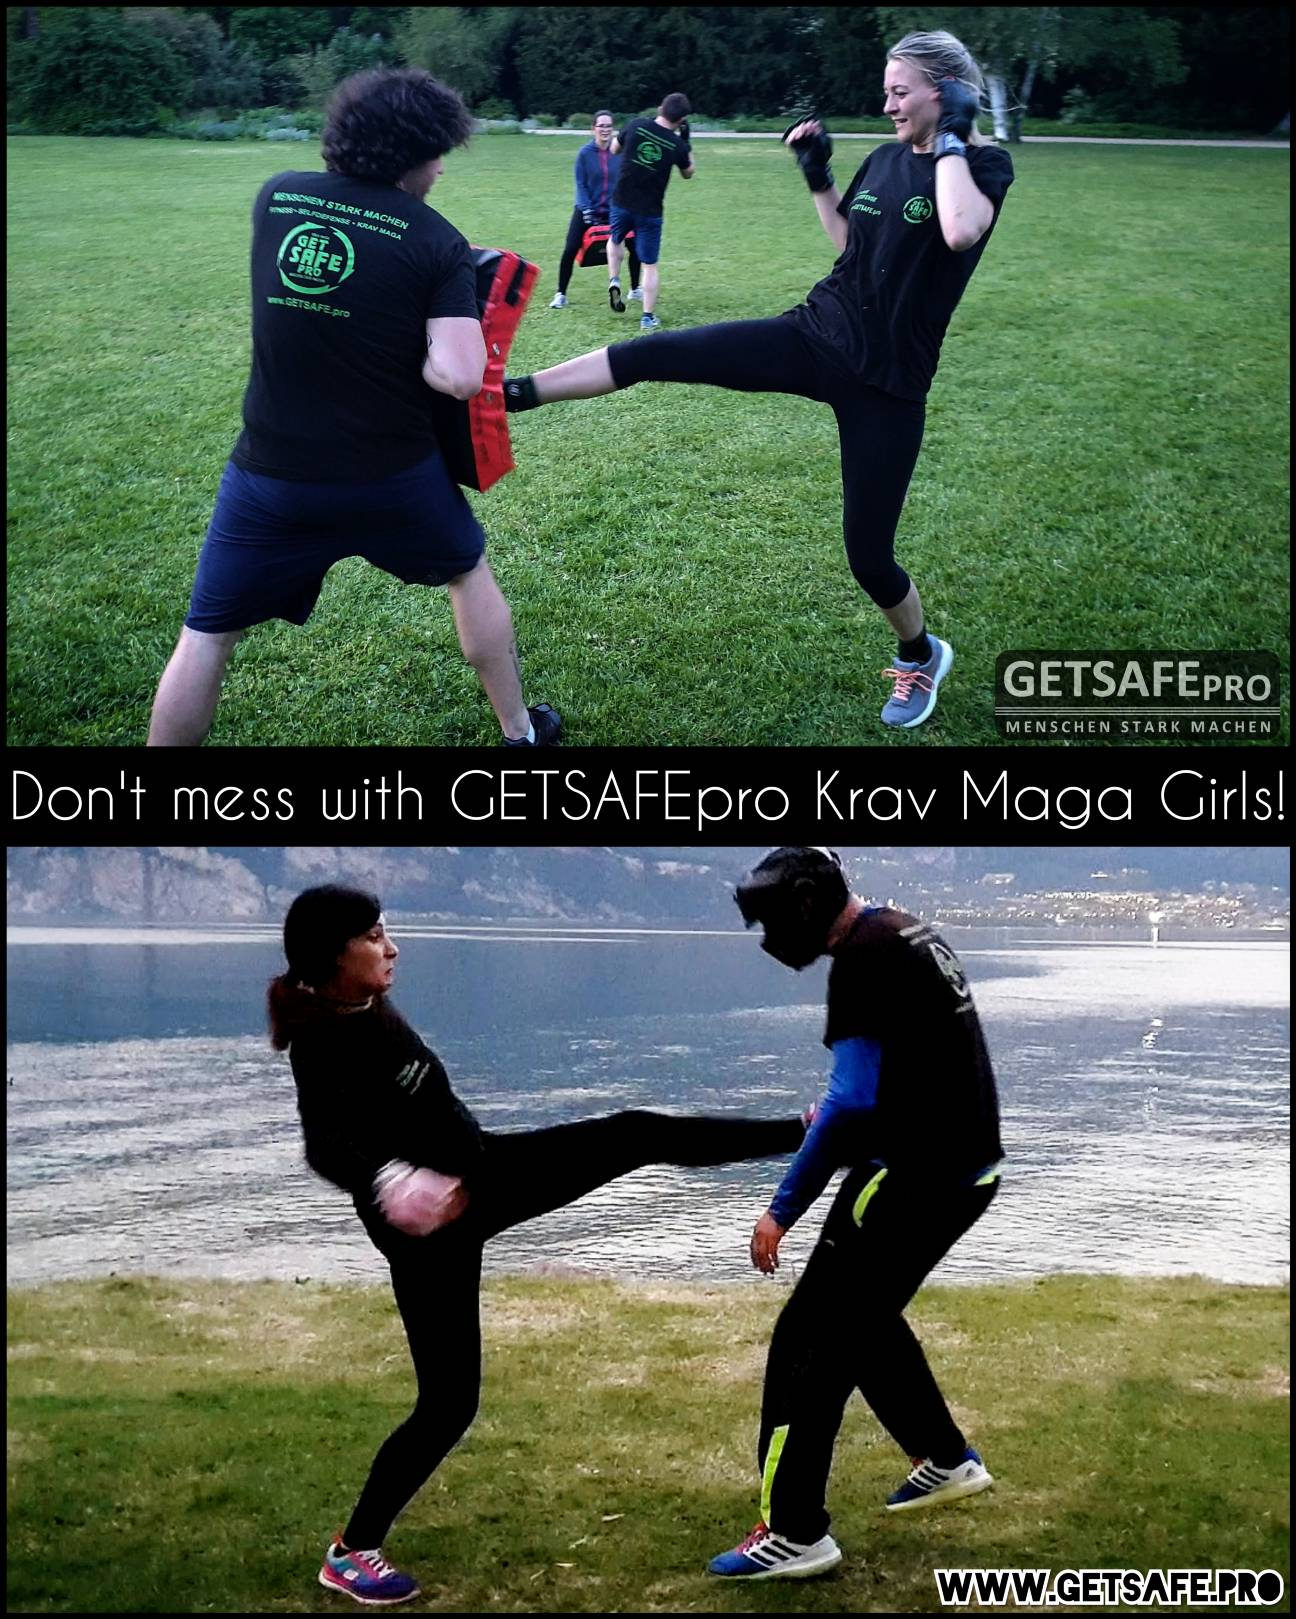 GETSAFEpro Krav Maga Outdoor Training Selbstverteidigung Fitness (5)_1